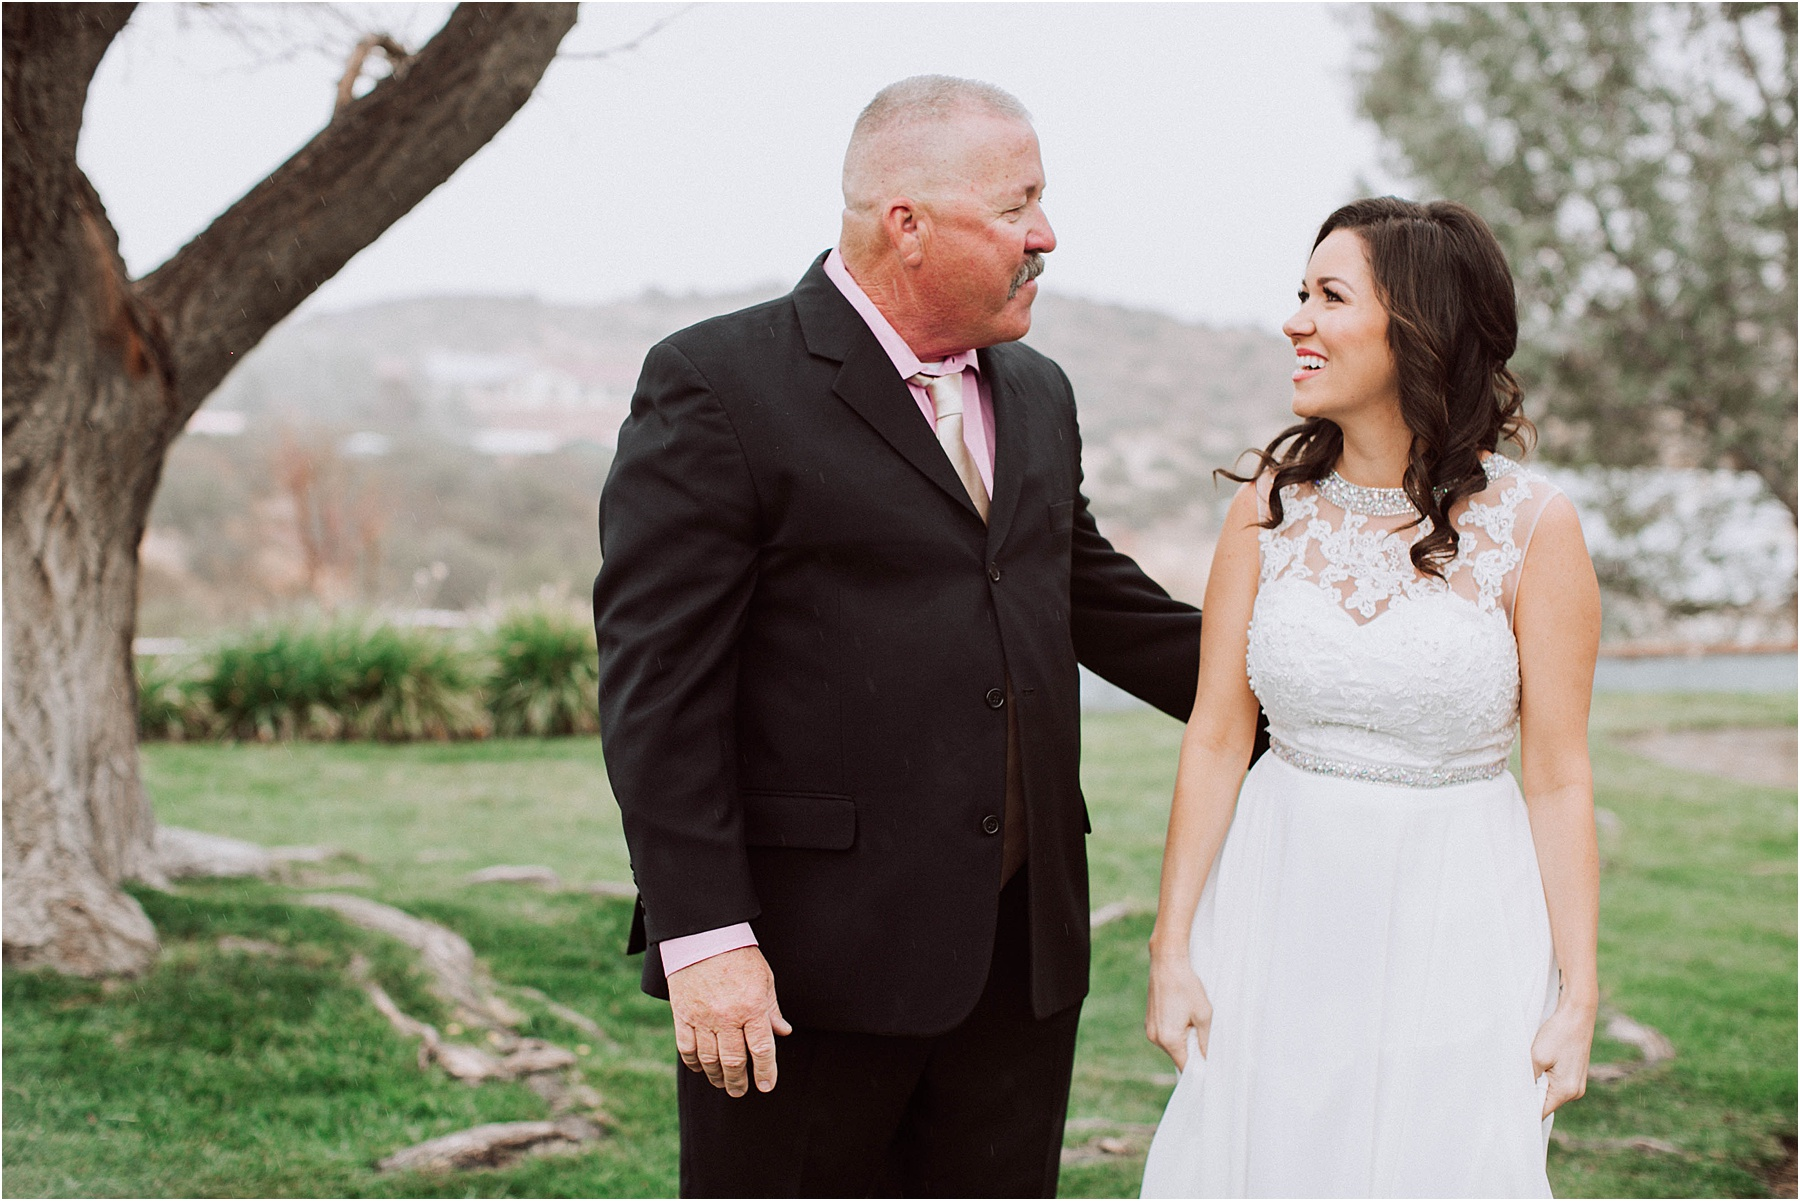 Santa Clarita Intimate Wedding & Elopement Photography - first look with bride's dad